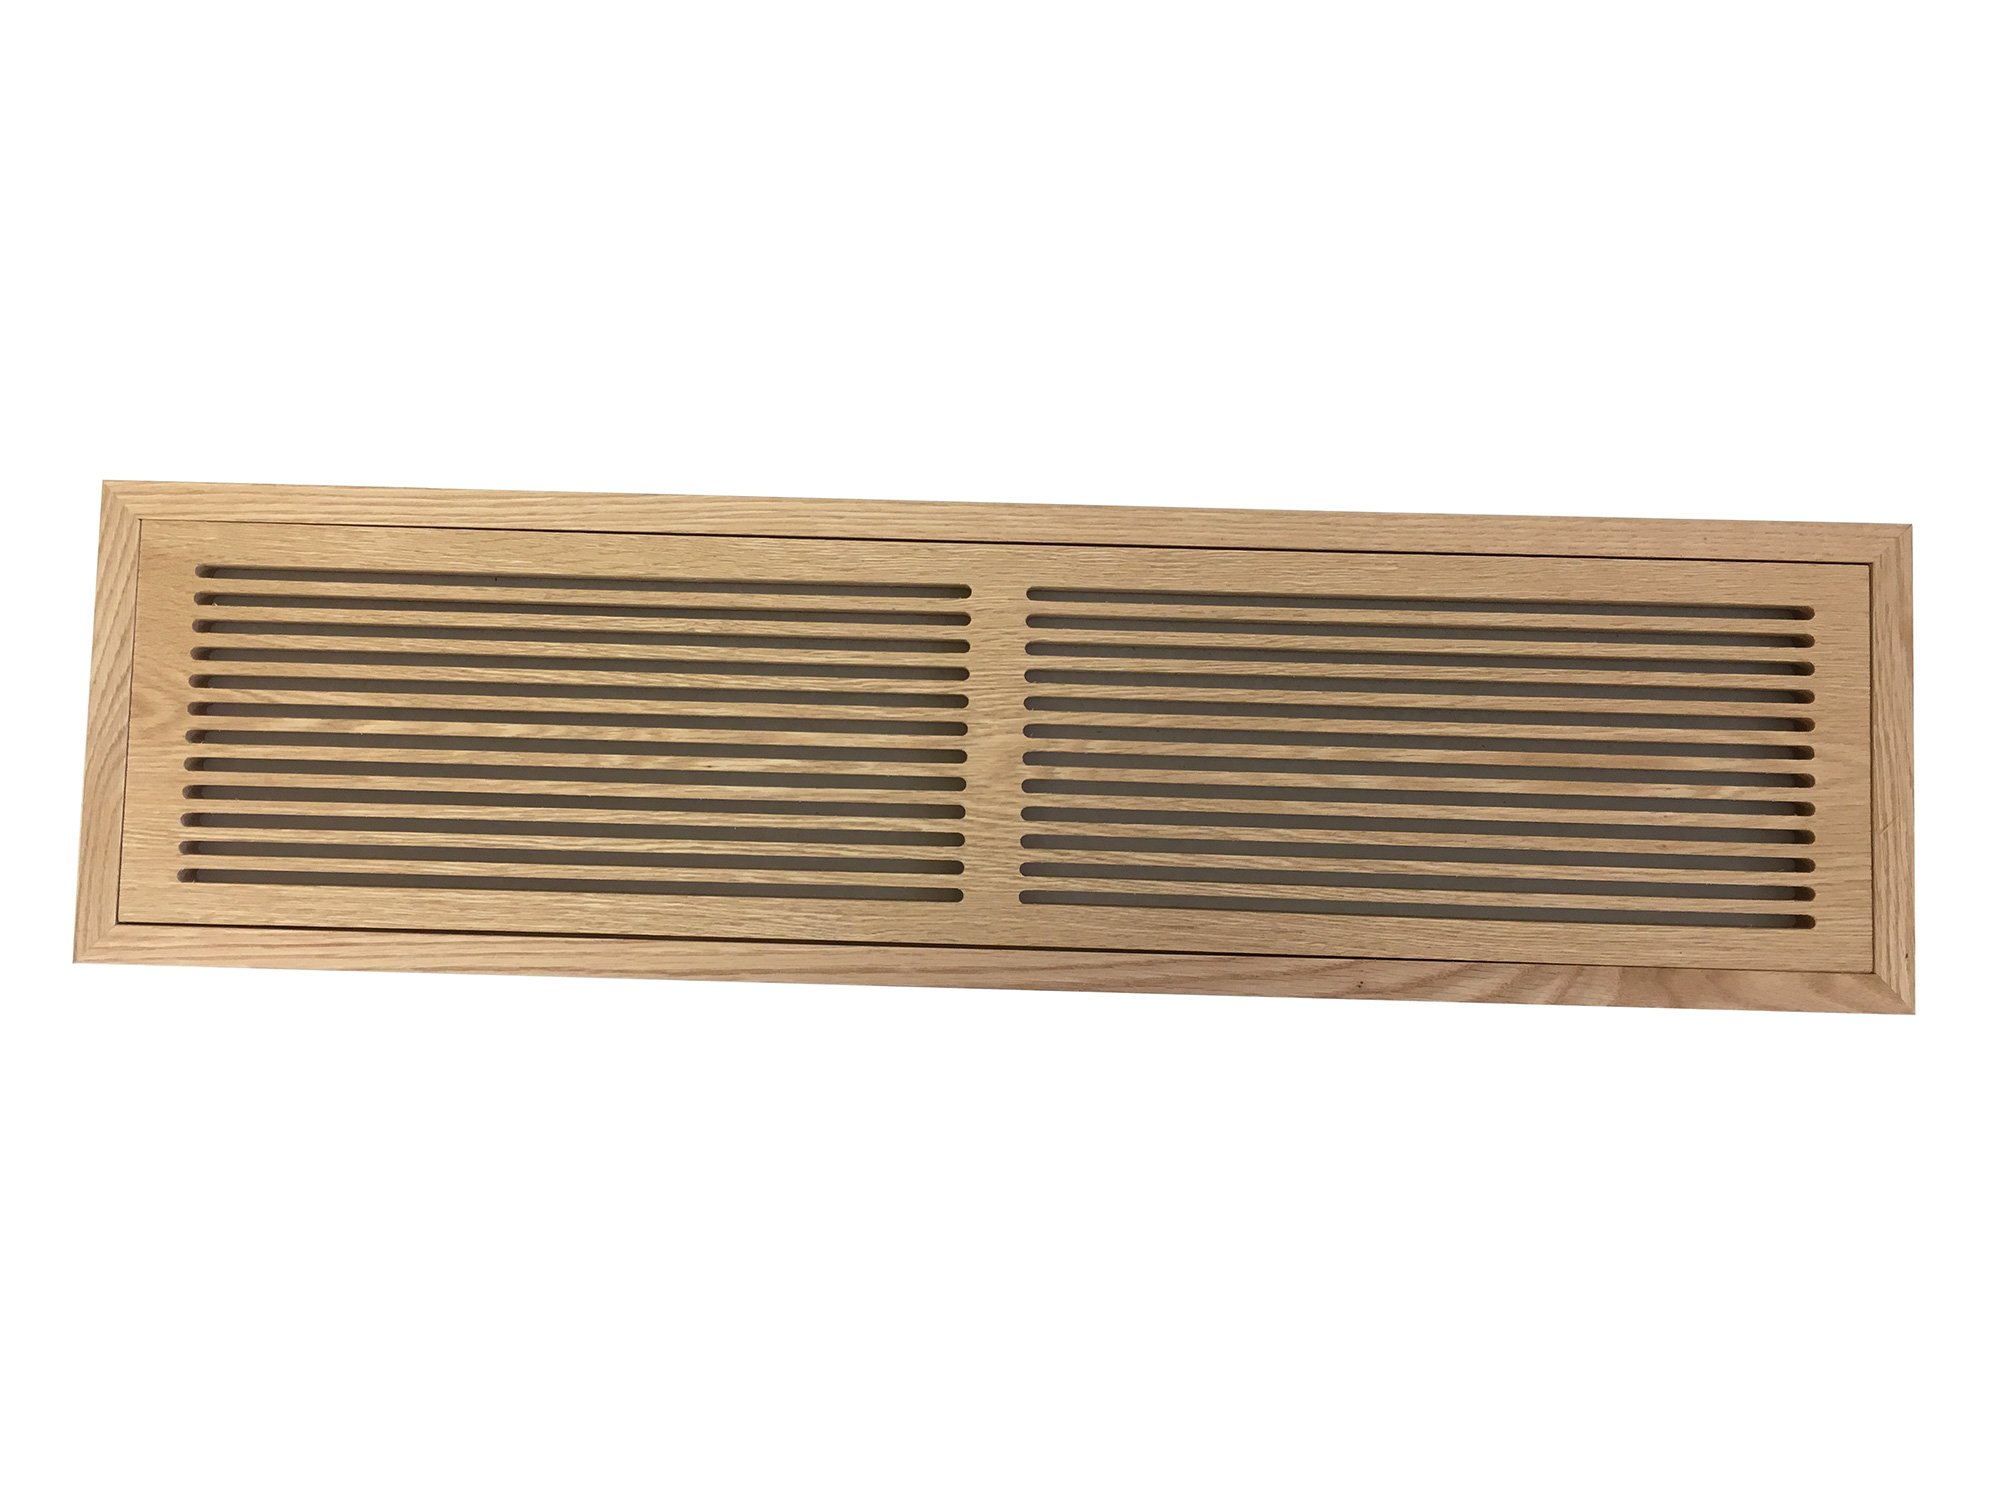 6 Inch x 30 Inch Red Oak Hardwood Vent Floor Register Flush Mount with Frame, Slotted Style, Unfinished